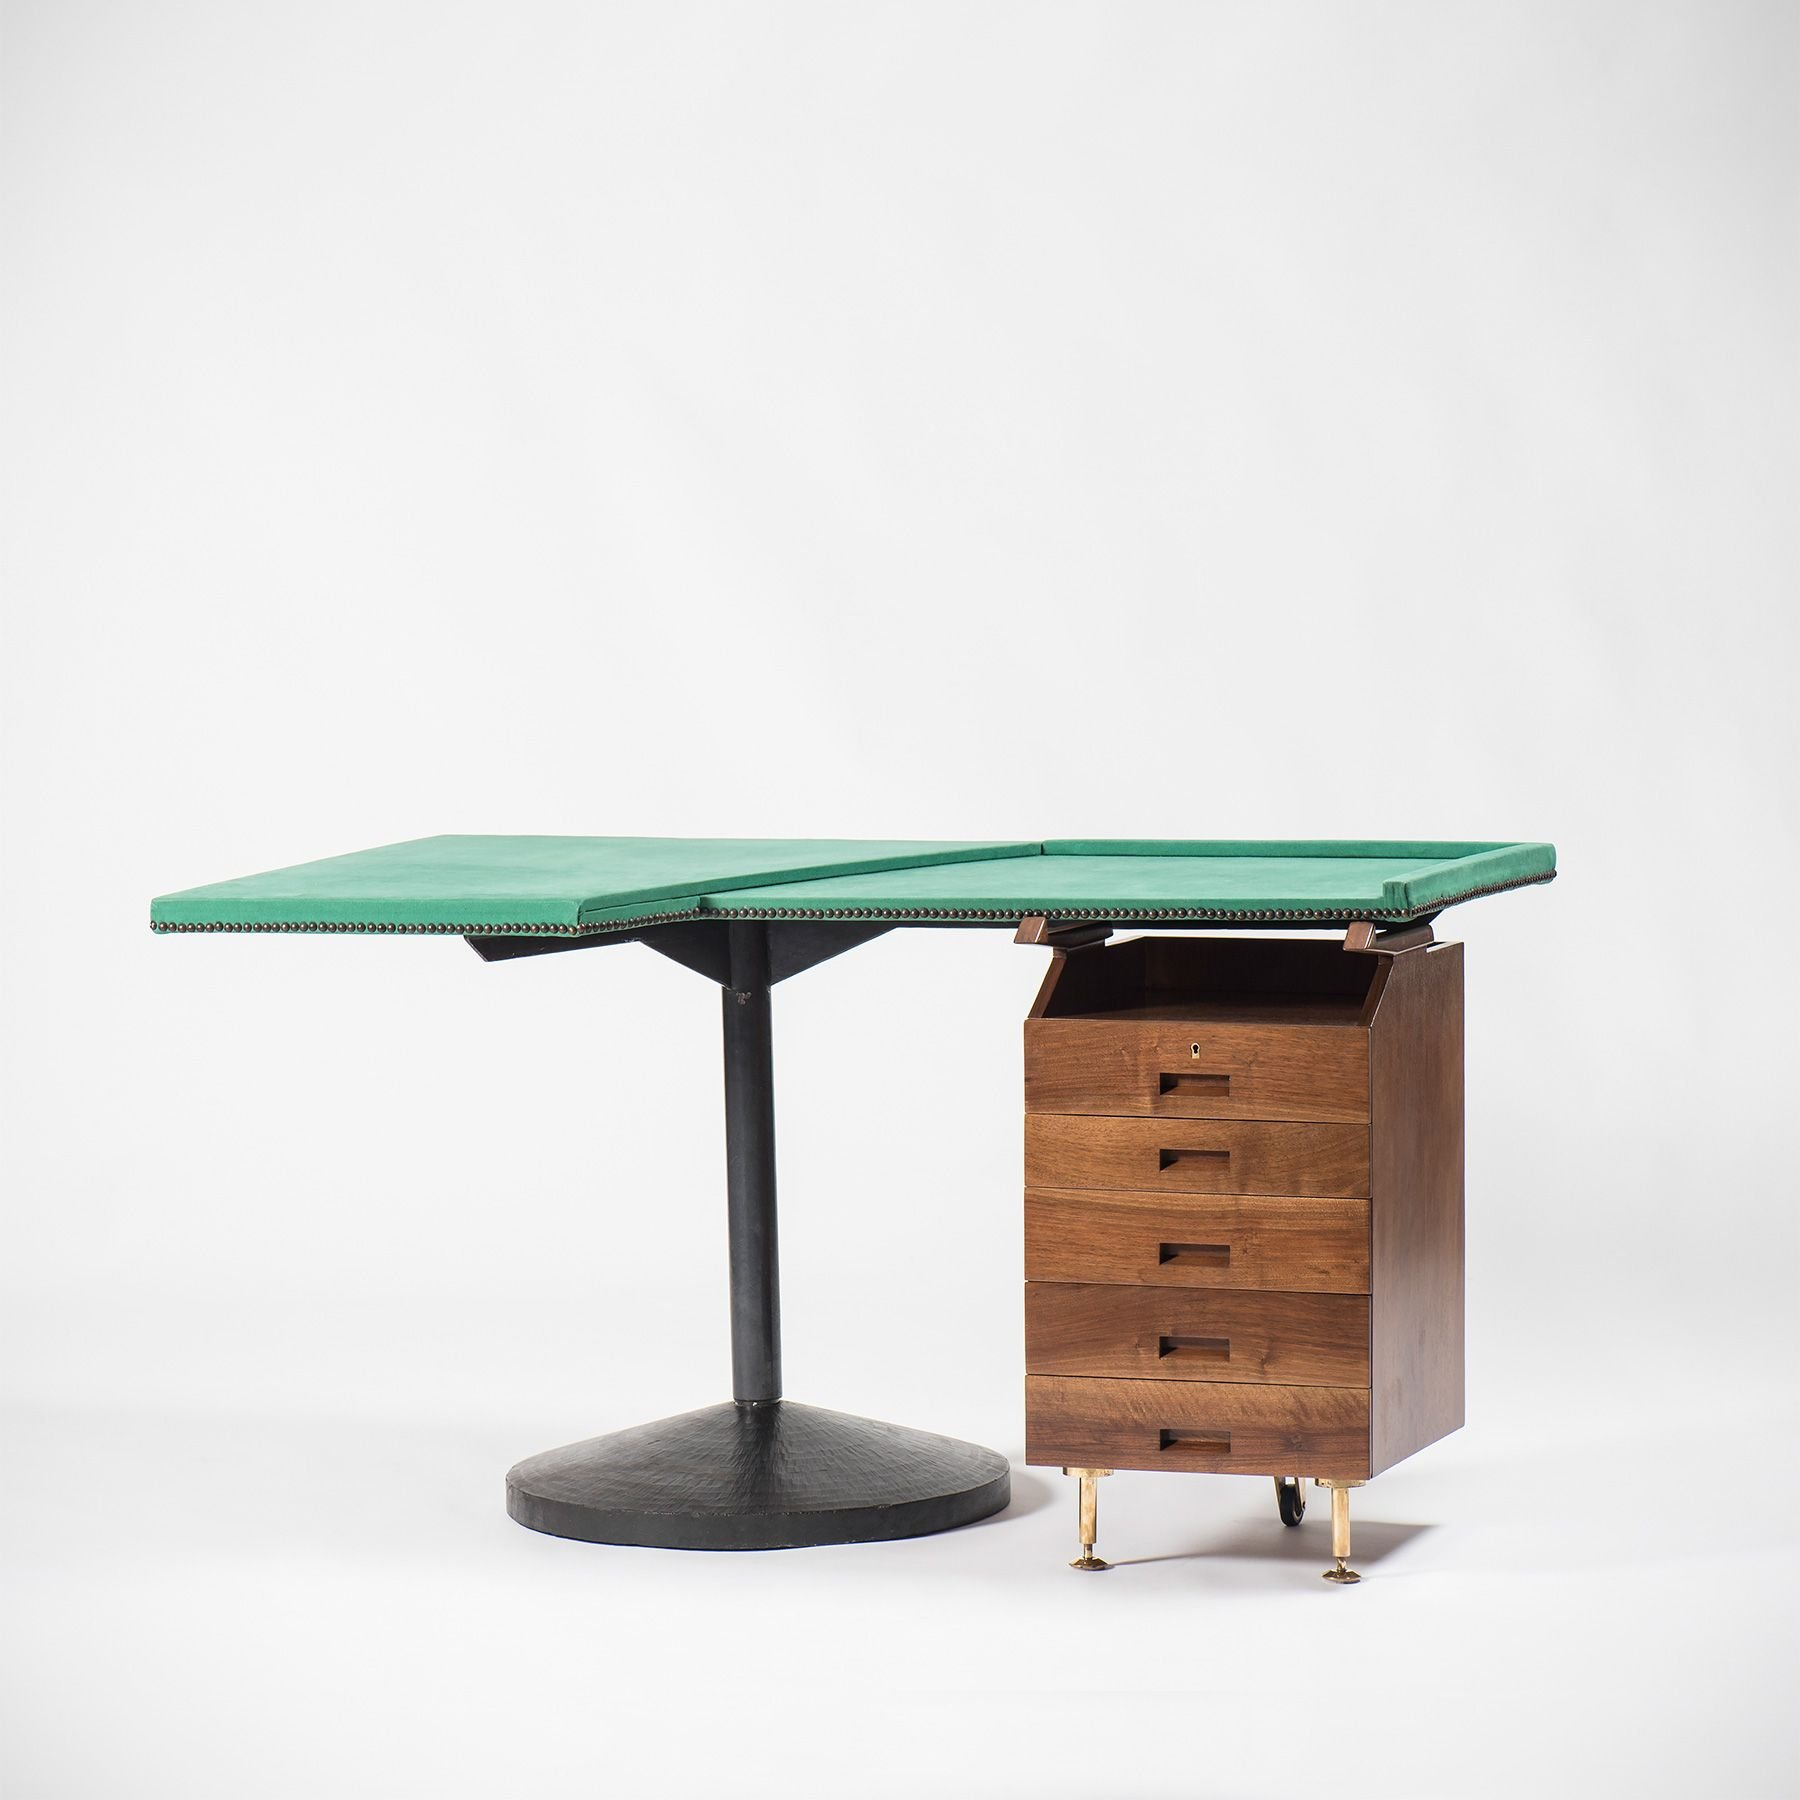 Stadera Desk with green top by Franco Albini - square picture - at Casati Gallery